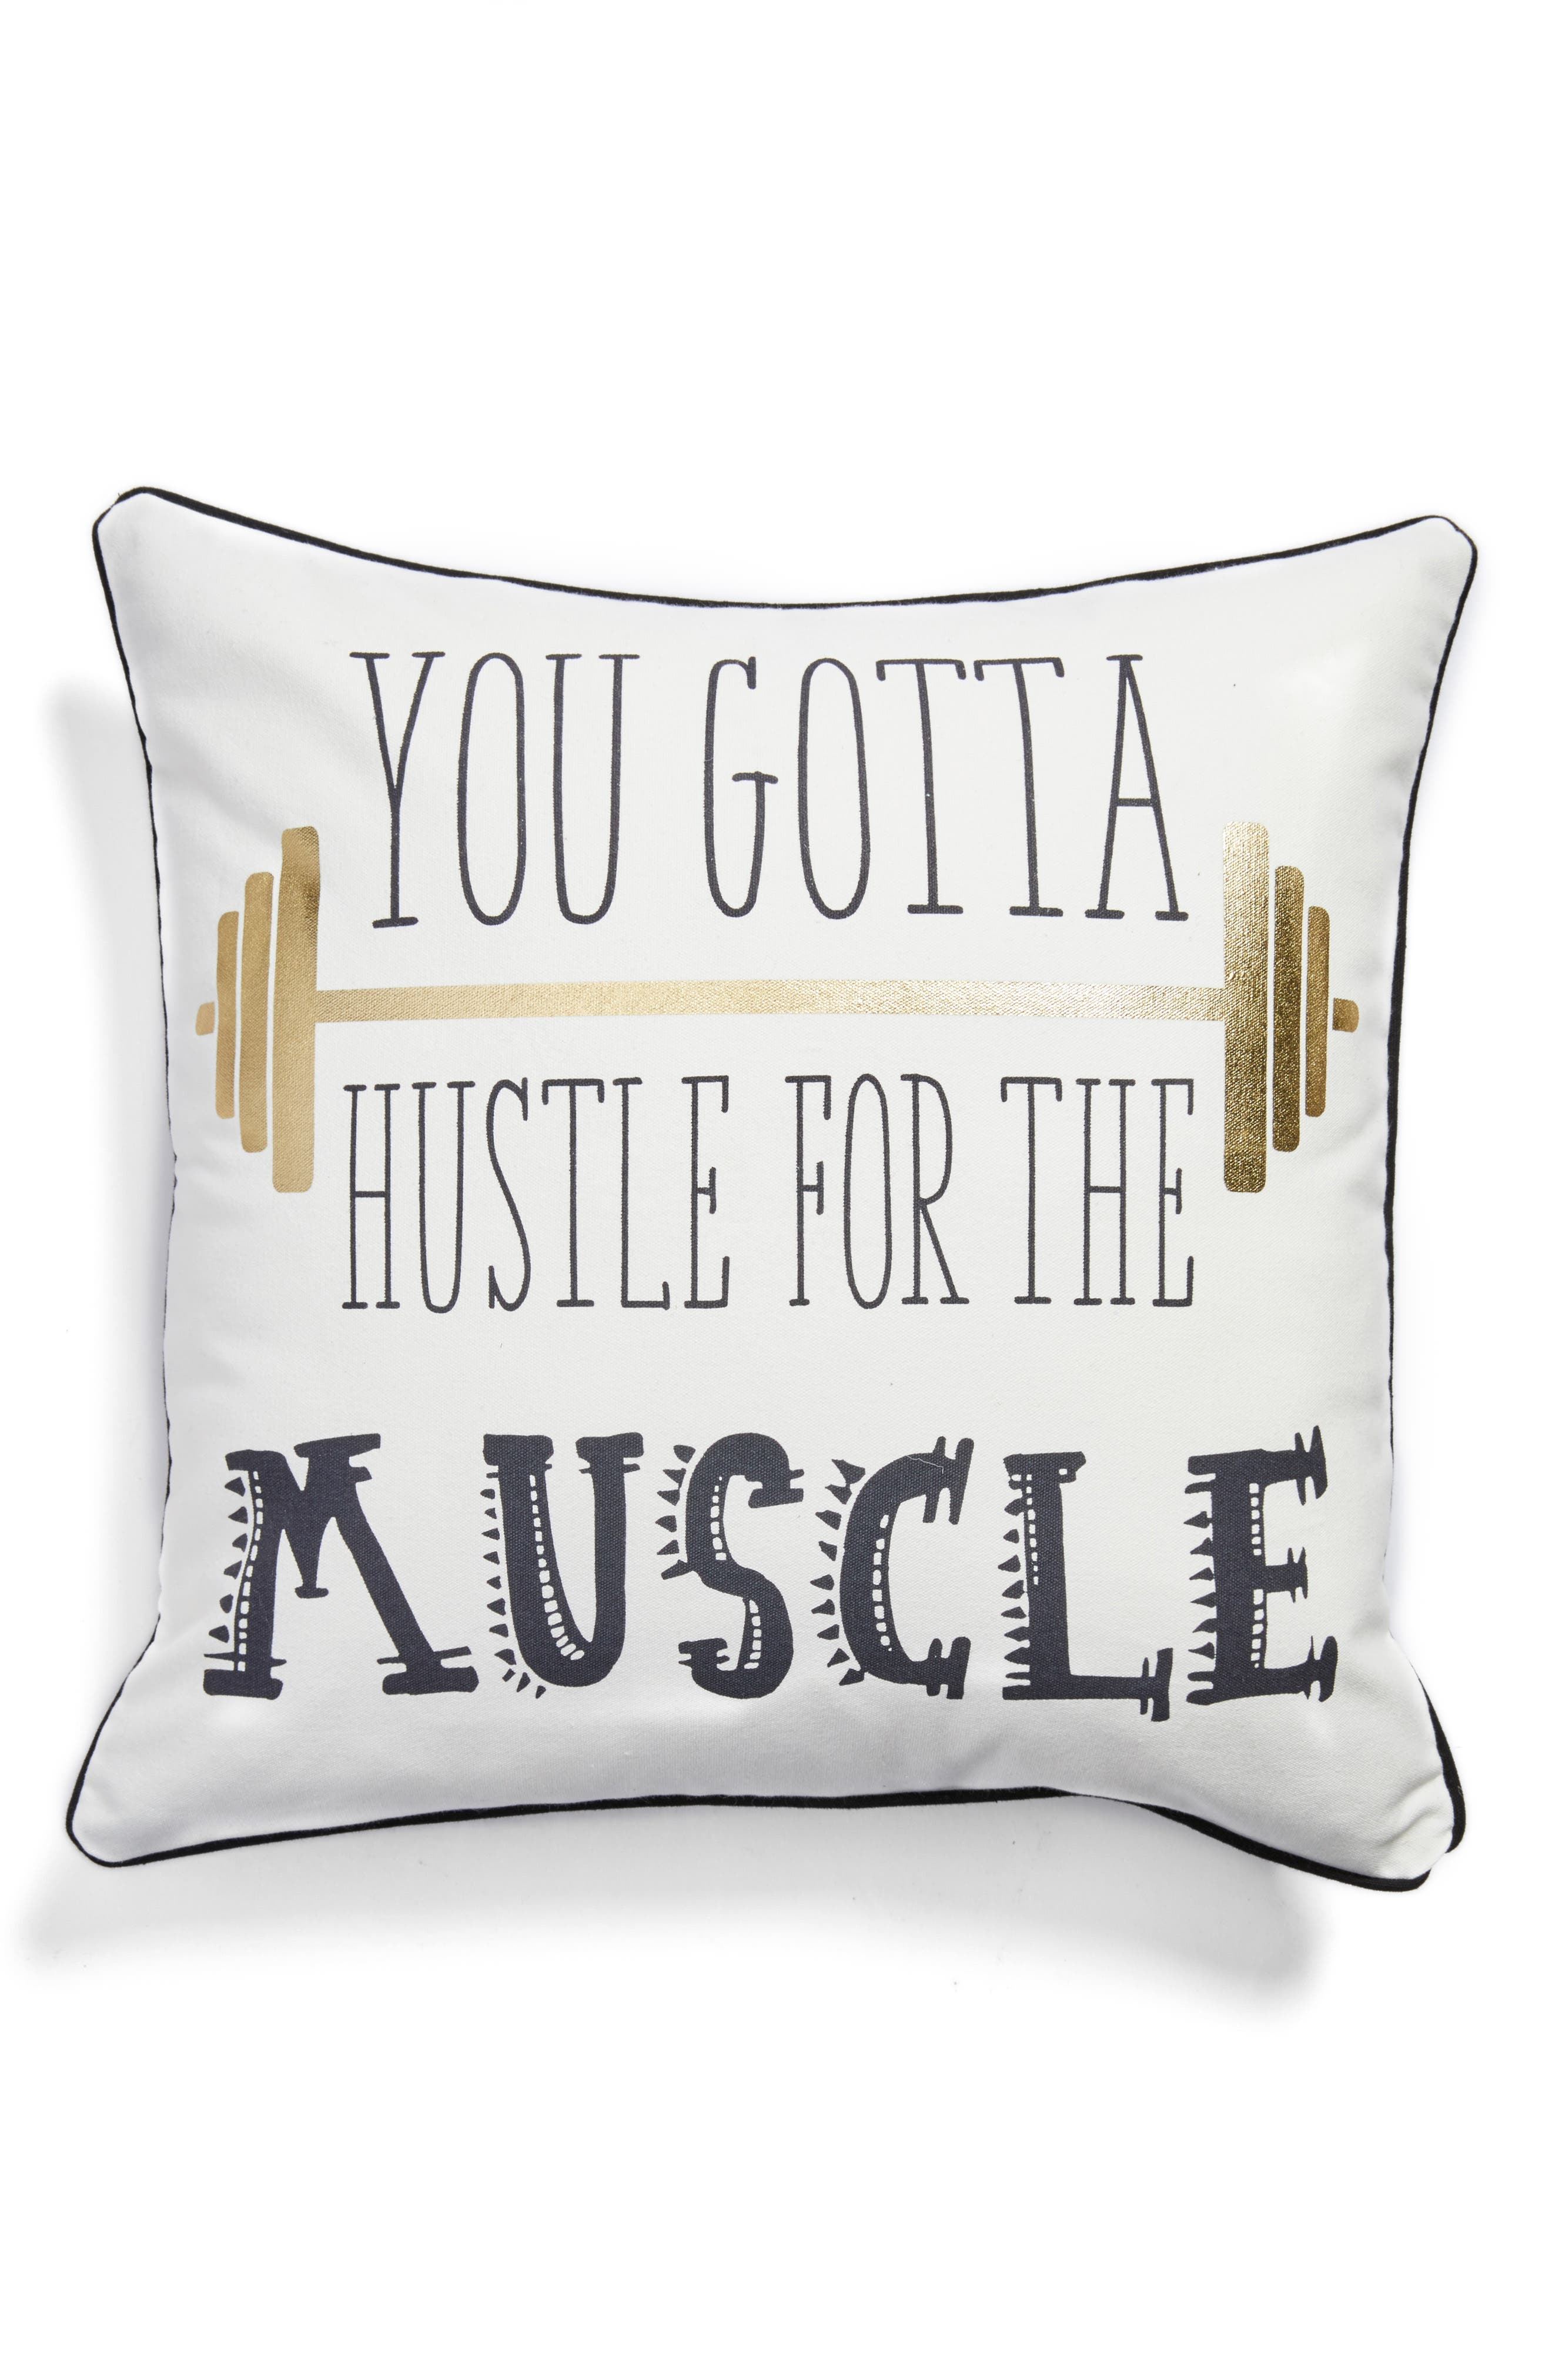 Hustle for the Muscle Pillow,                         Main,                         color, White